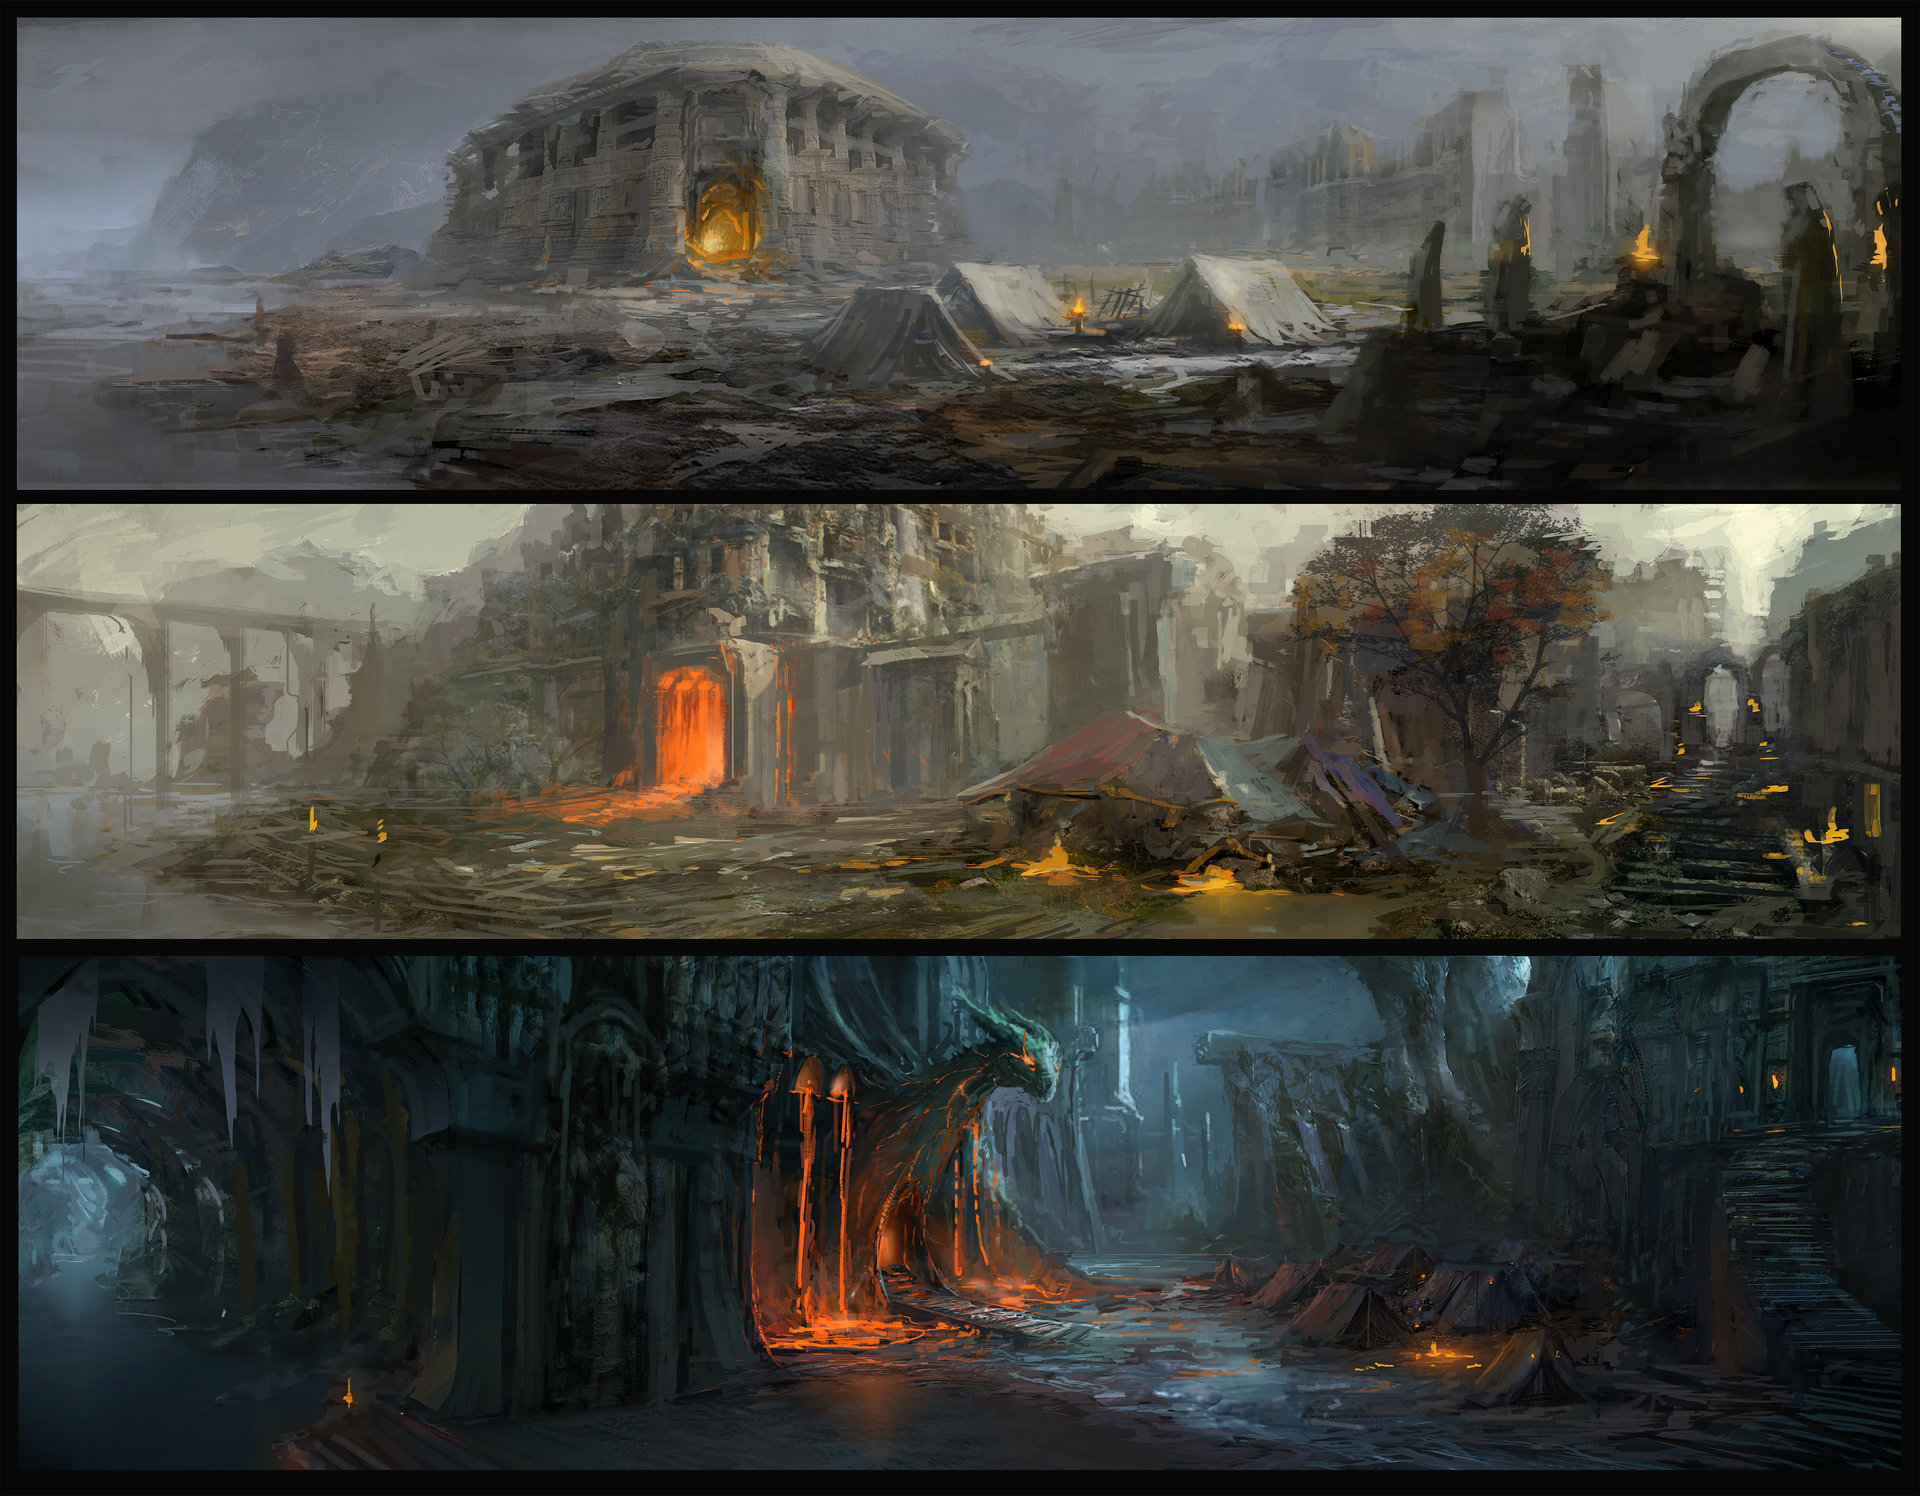 Muyoung kim environment hb concept sketches